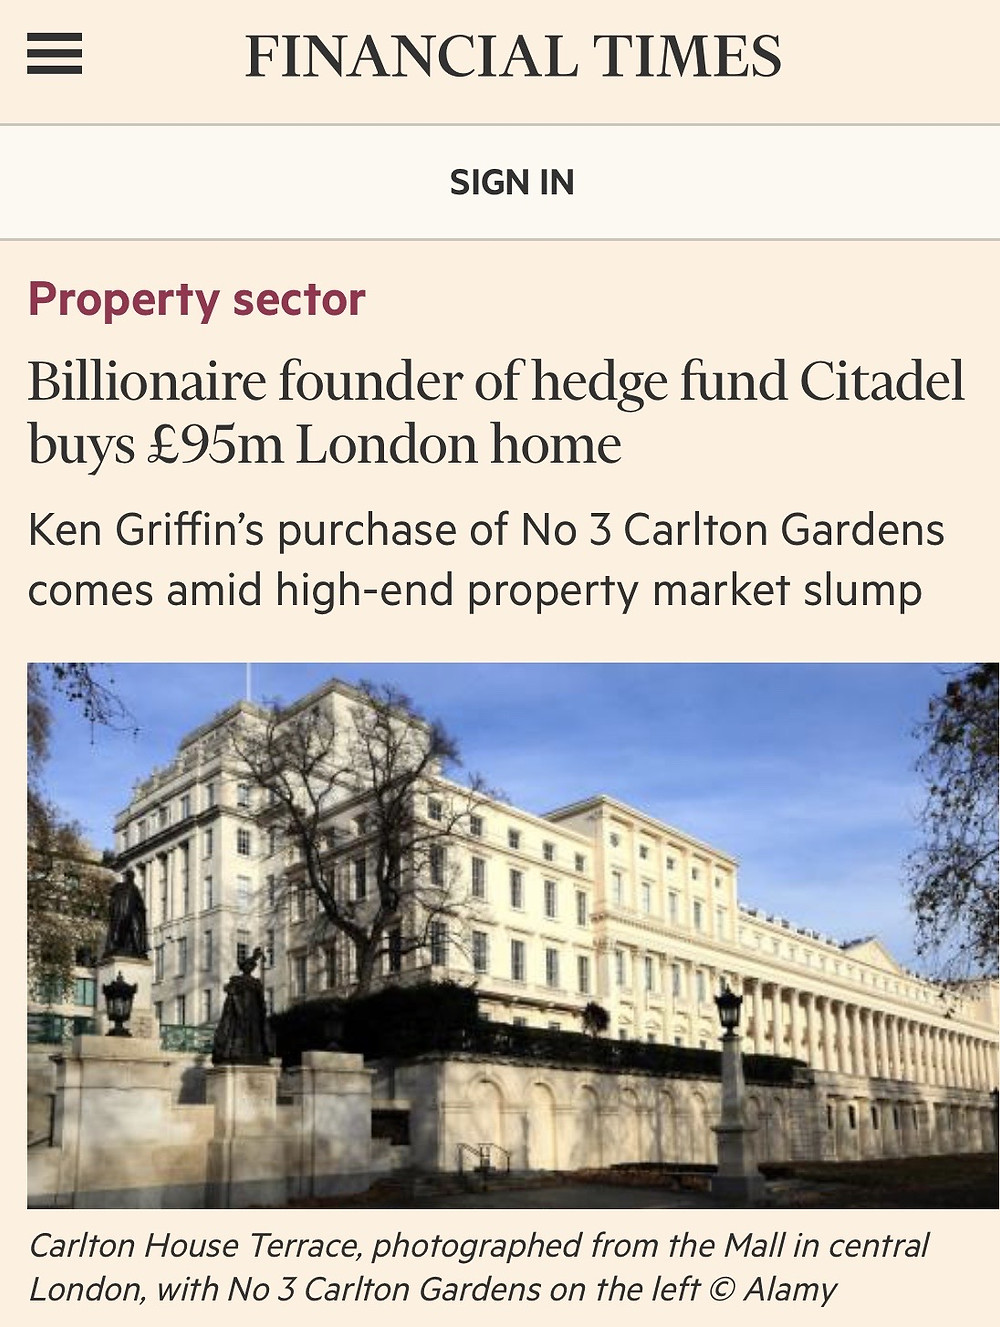 Citadel founder buys £95m London Home